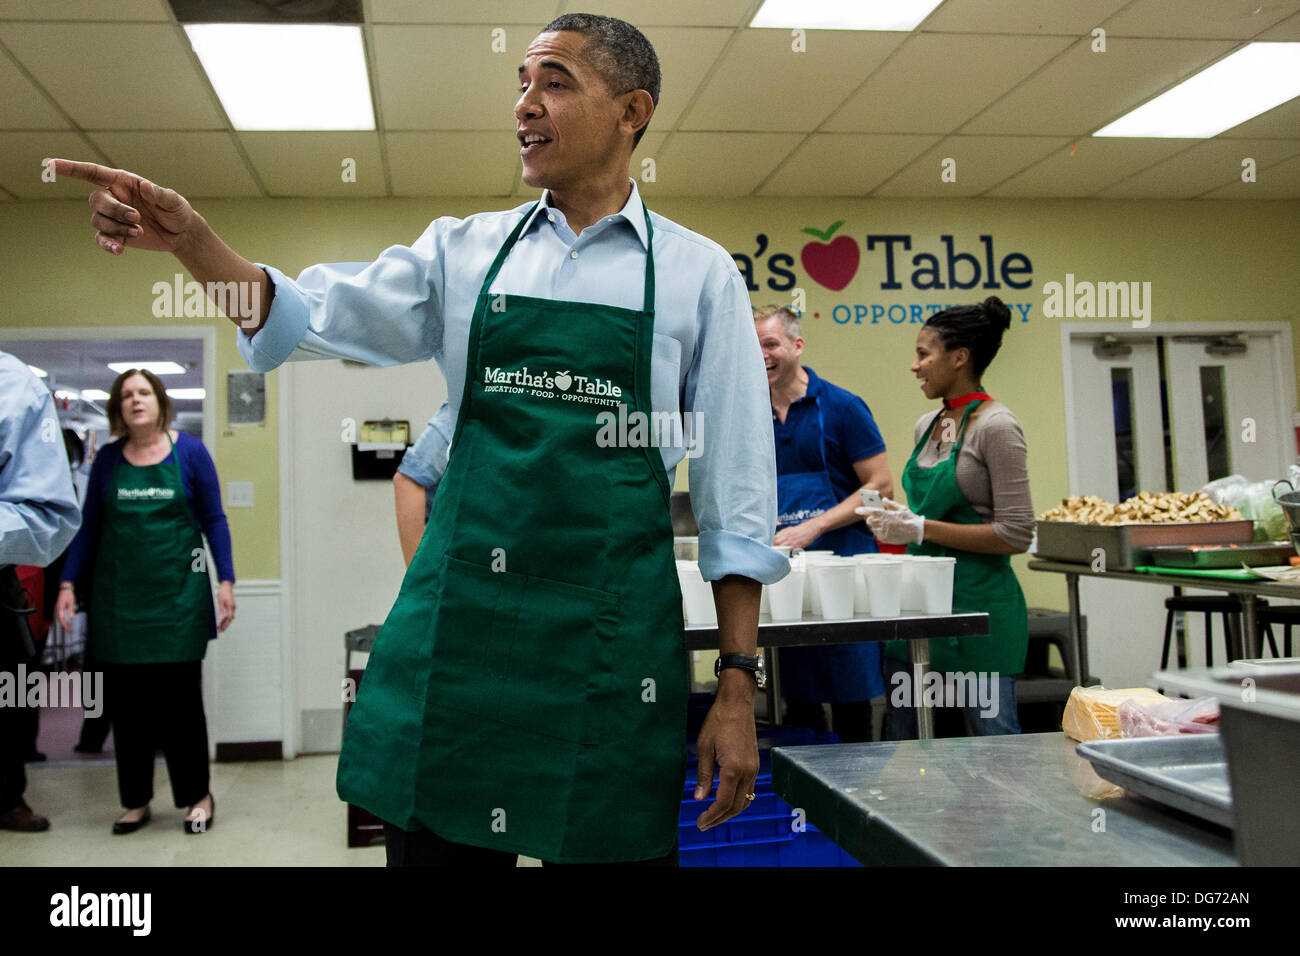 Washington, DC In a statement to the press, the President called on Congress to end the budget stalemate and allow federal employees to return to work. 14th Oct, 2013. United States President Barack Obama visits with furloughed federal workers volunteering at a Martha's Table kitchen on October 14, 2013 in Washington, DC In a statement to the press, the President called on Congress to end the budget stalemate and allow federal employees to return to work. Credit: T.J. Kirkpatrick / Pool via CNP/dpa/Alamy Live News - Stock Image